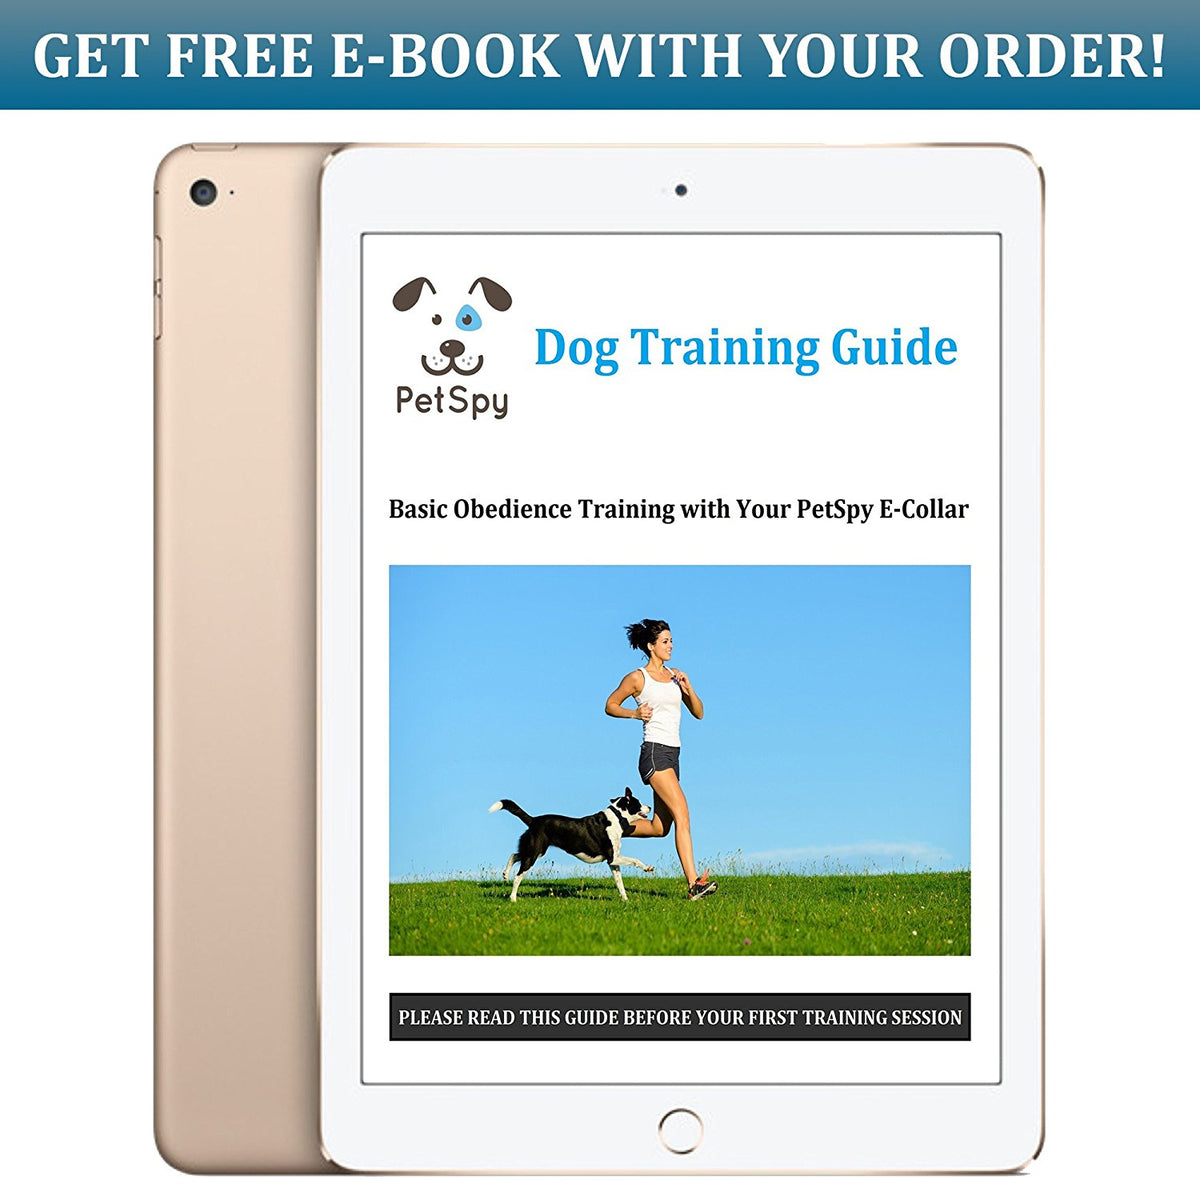 Get free ebook with dog training tips with your order from PetSpy